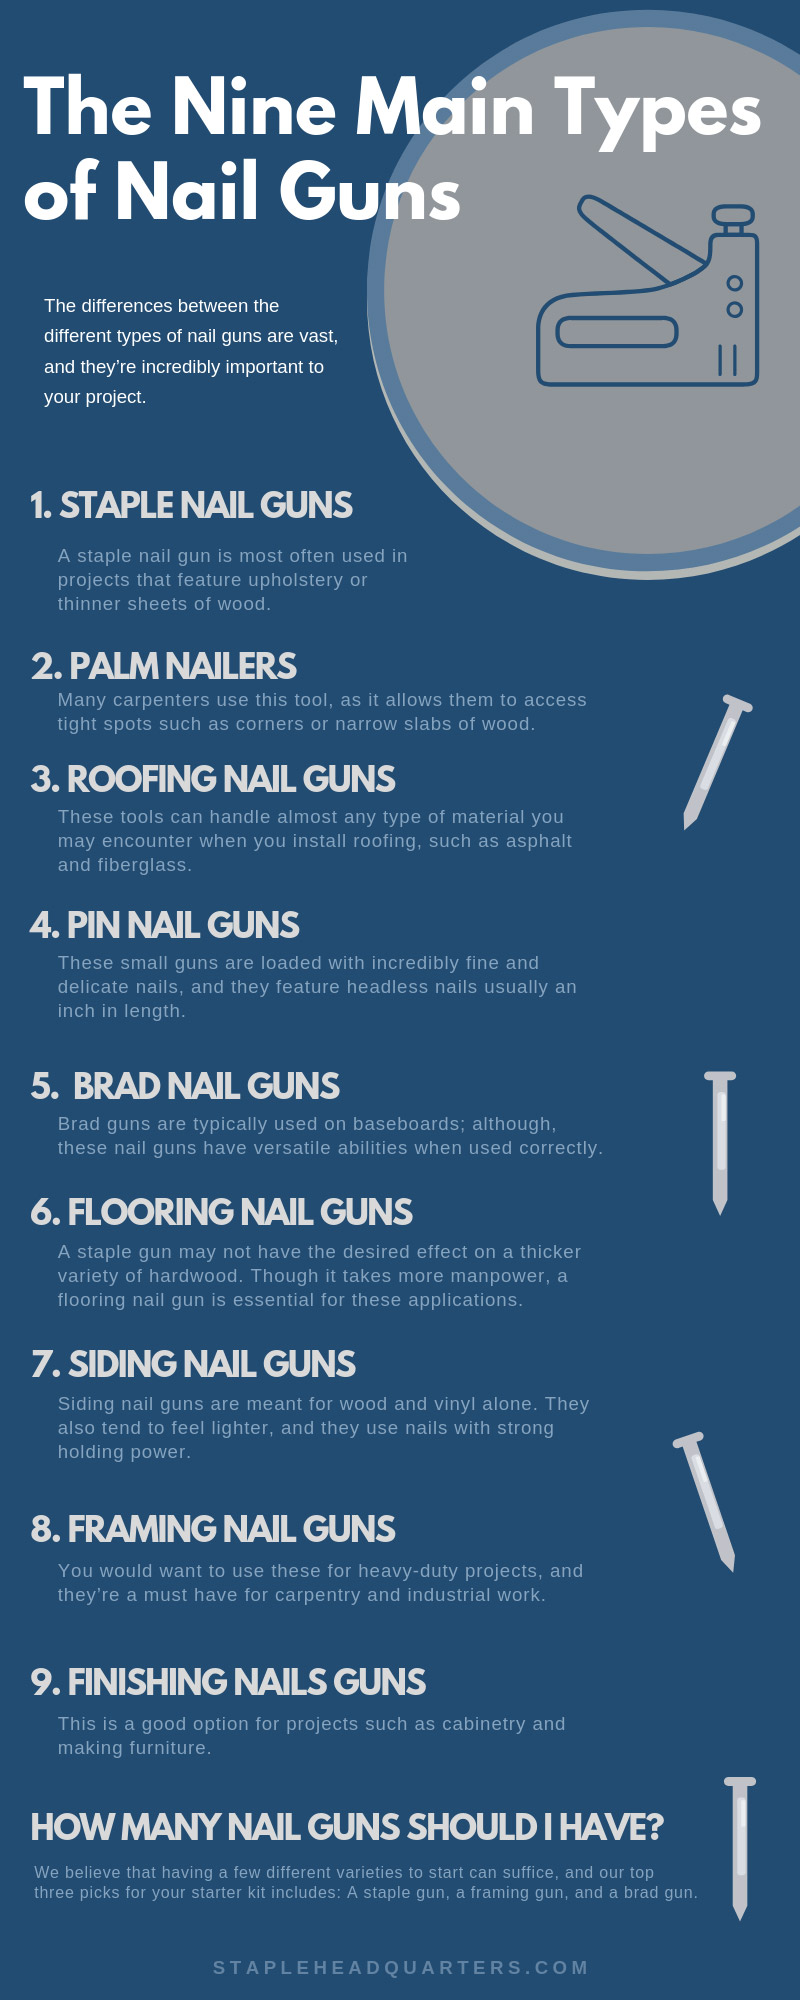 The Main Types of Nail Guns infographic